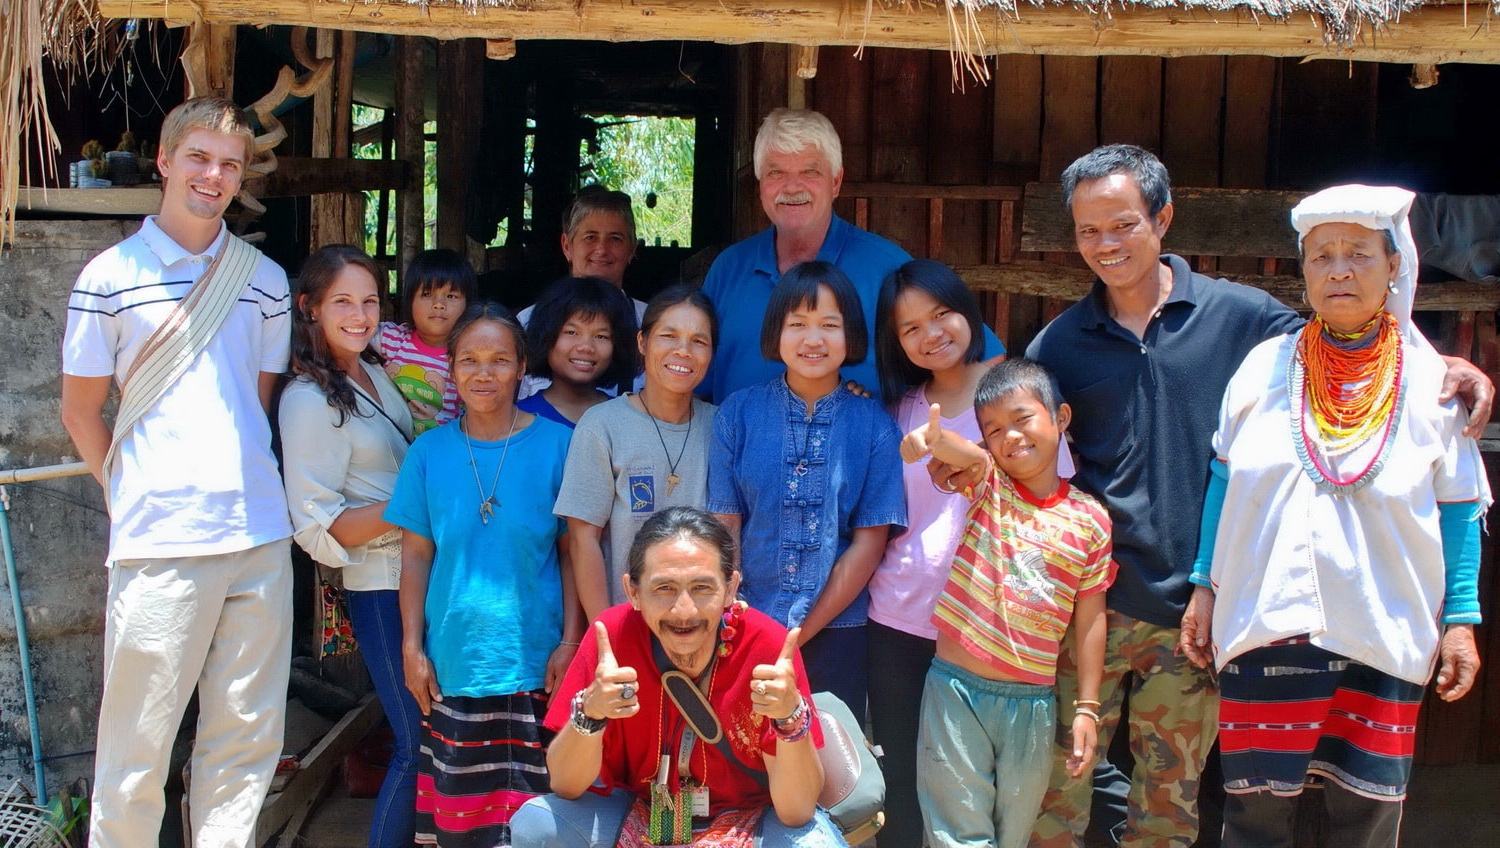 Thailand hilltribe holidays homestay group pic